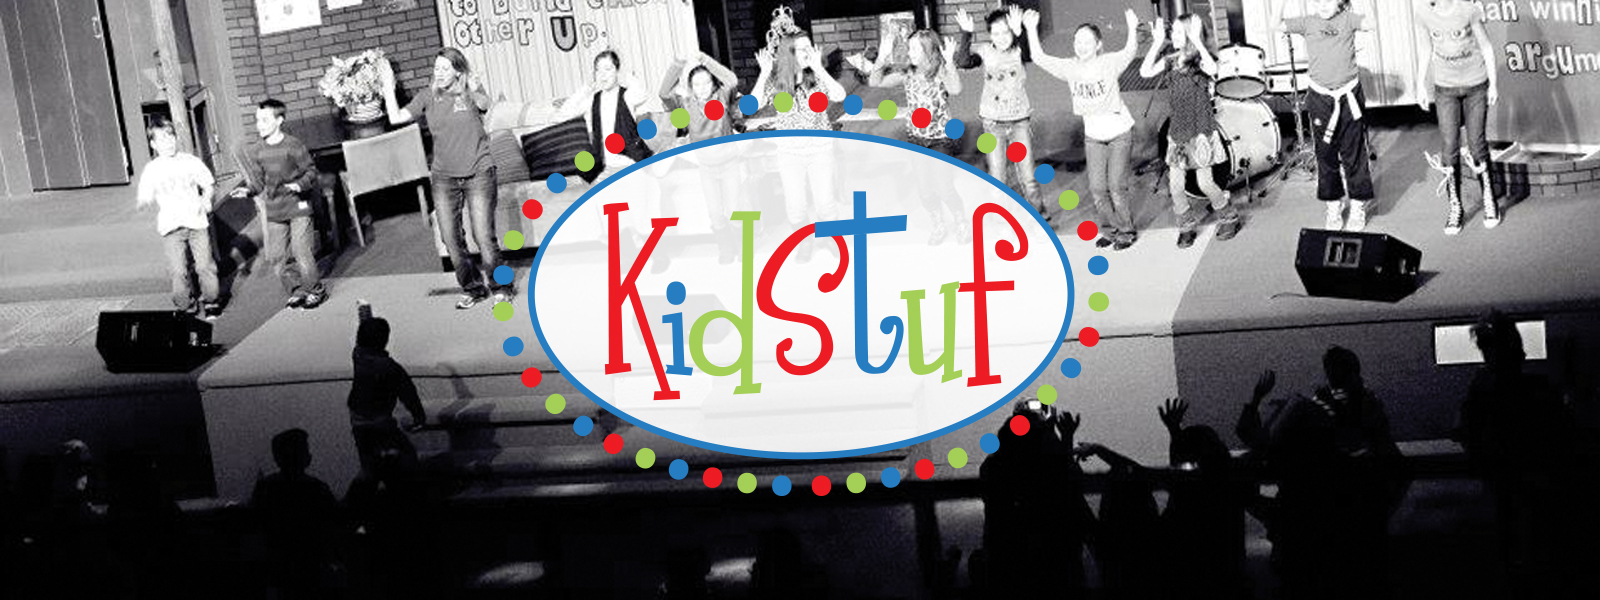 KidStuf Kick-Off